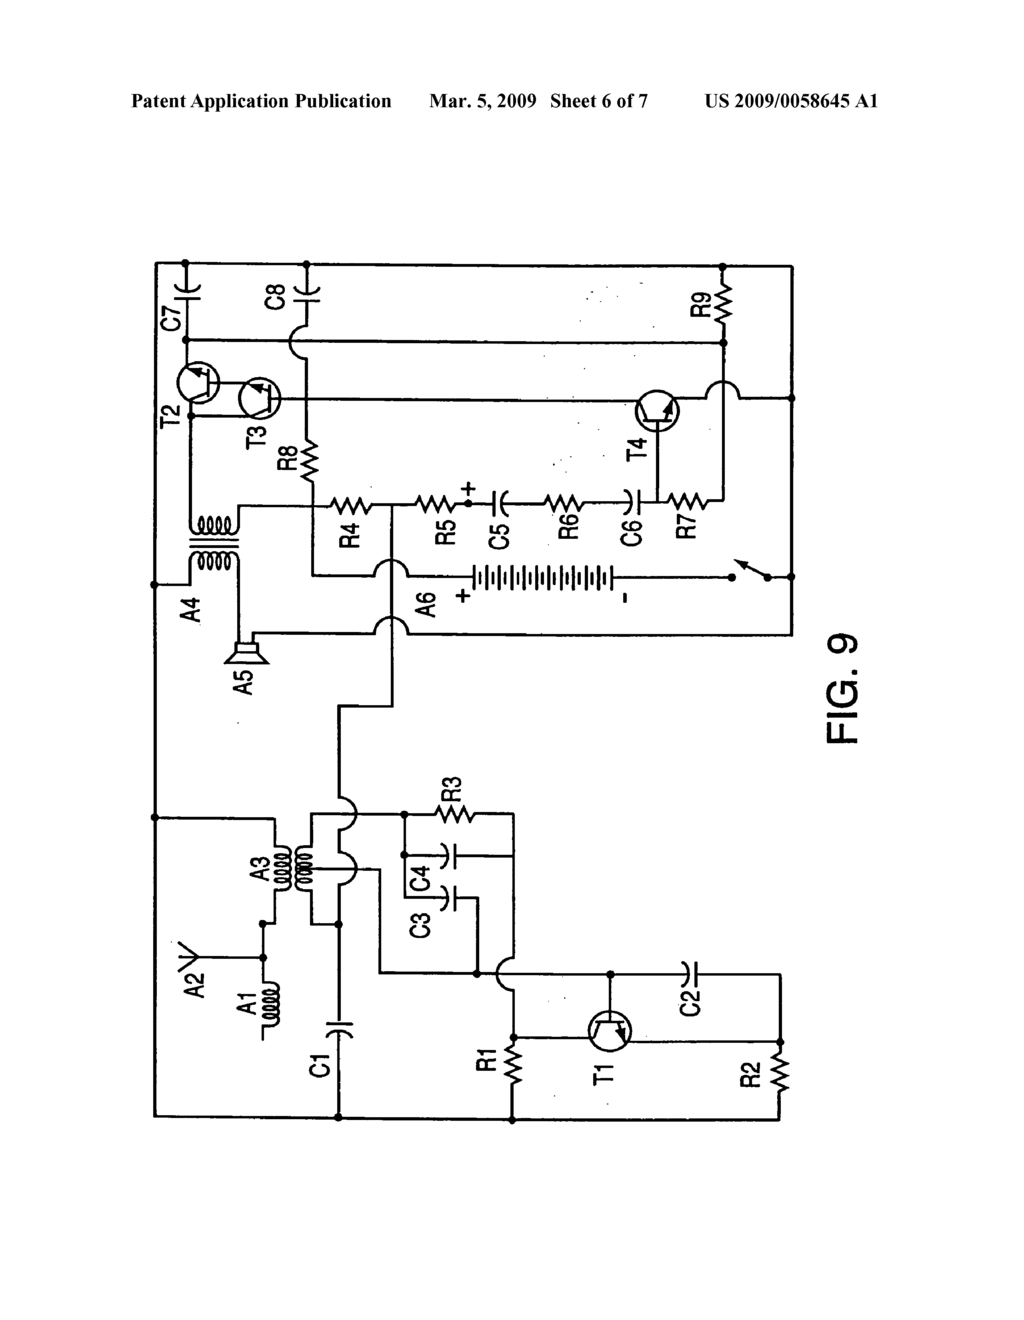 hight resolution of electronic lock out tag out safety device diagram schematic and image 07